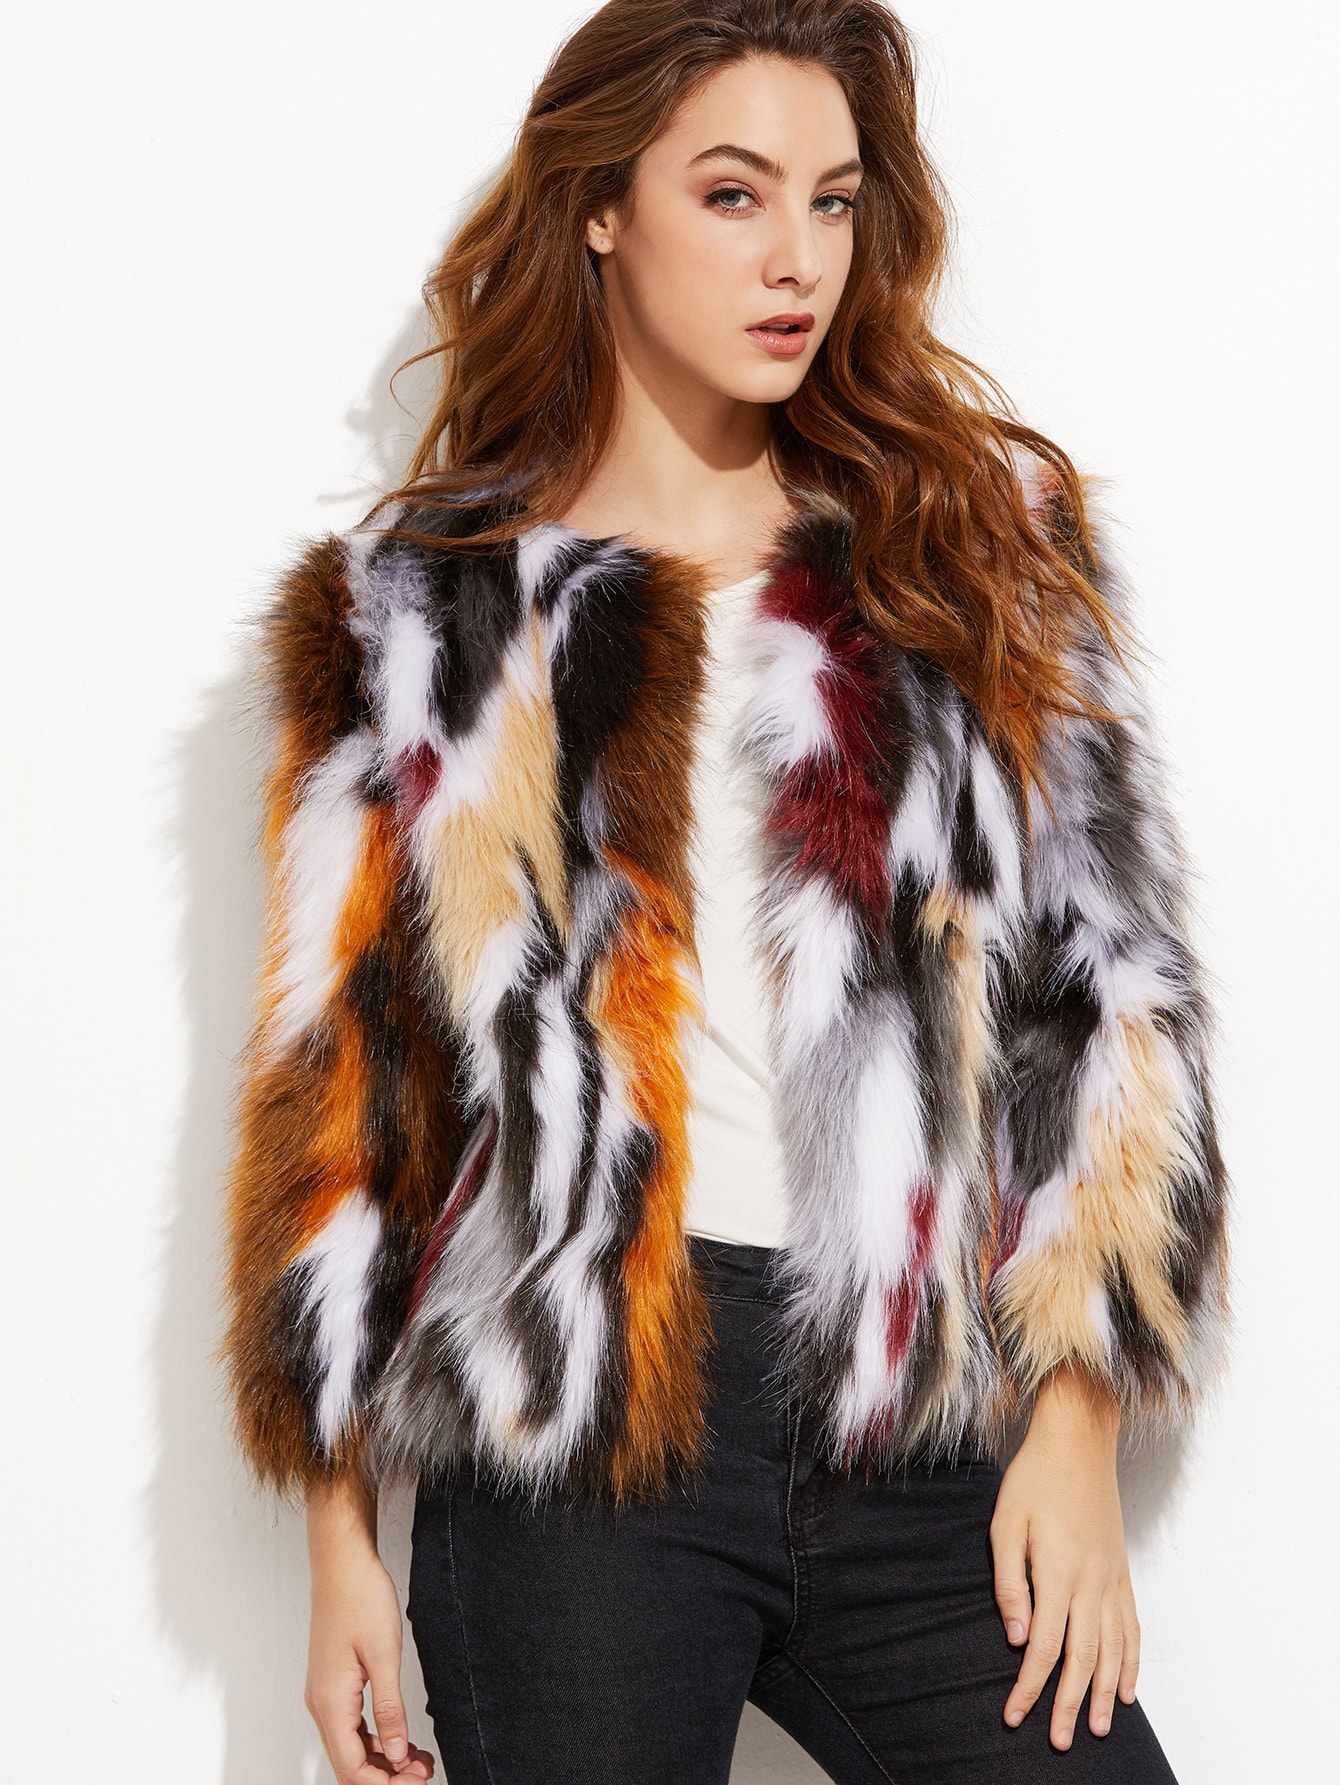 Coats Multi Faux Fur Collarless Party Elegant Short Winter Long Sleeve Outerwear.